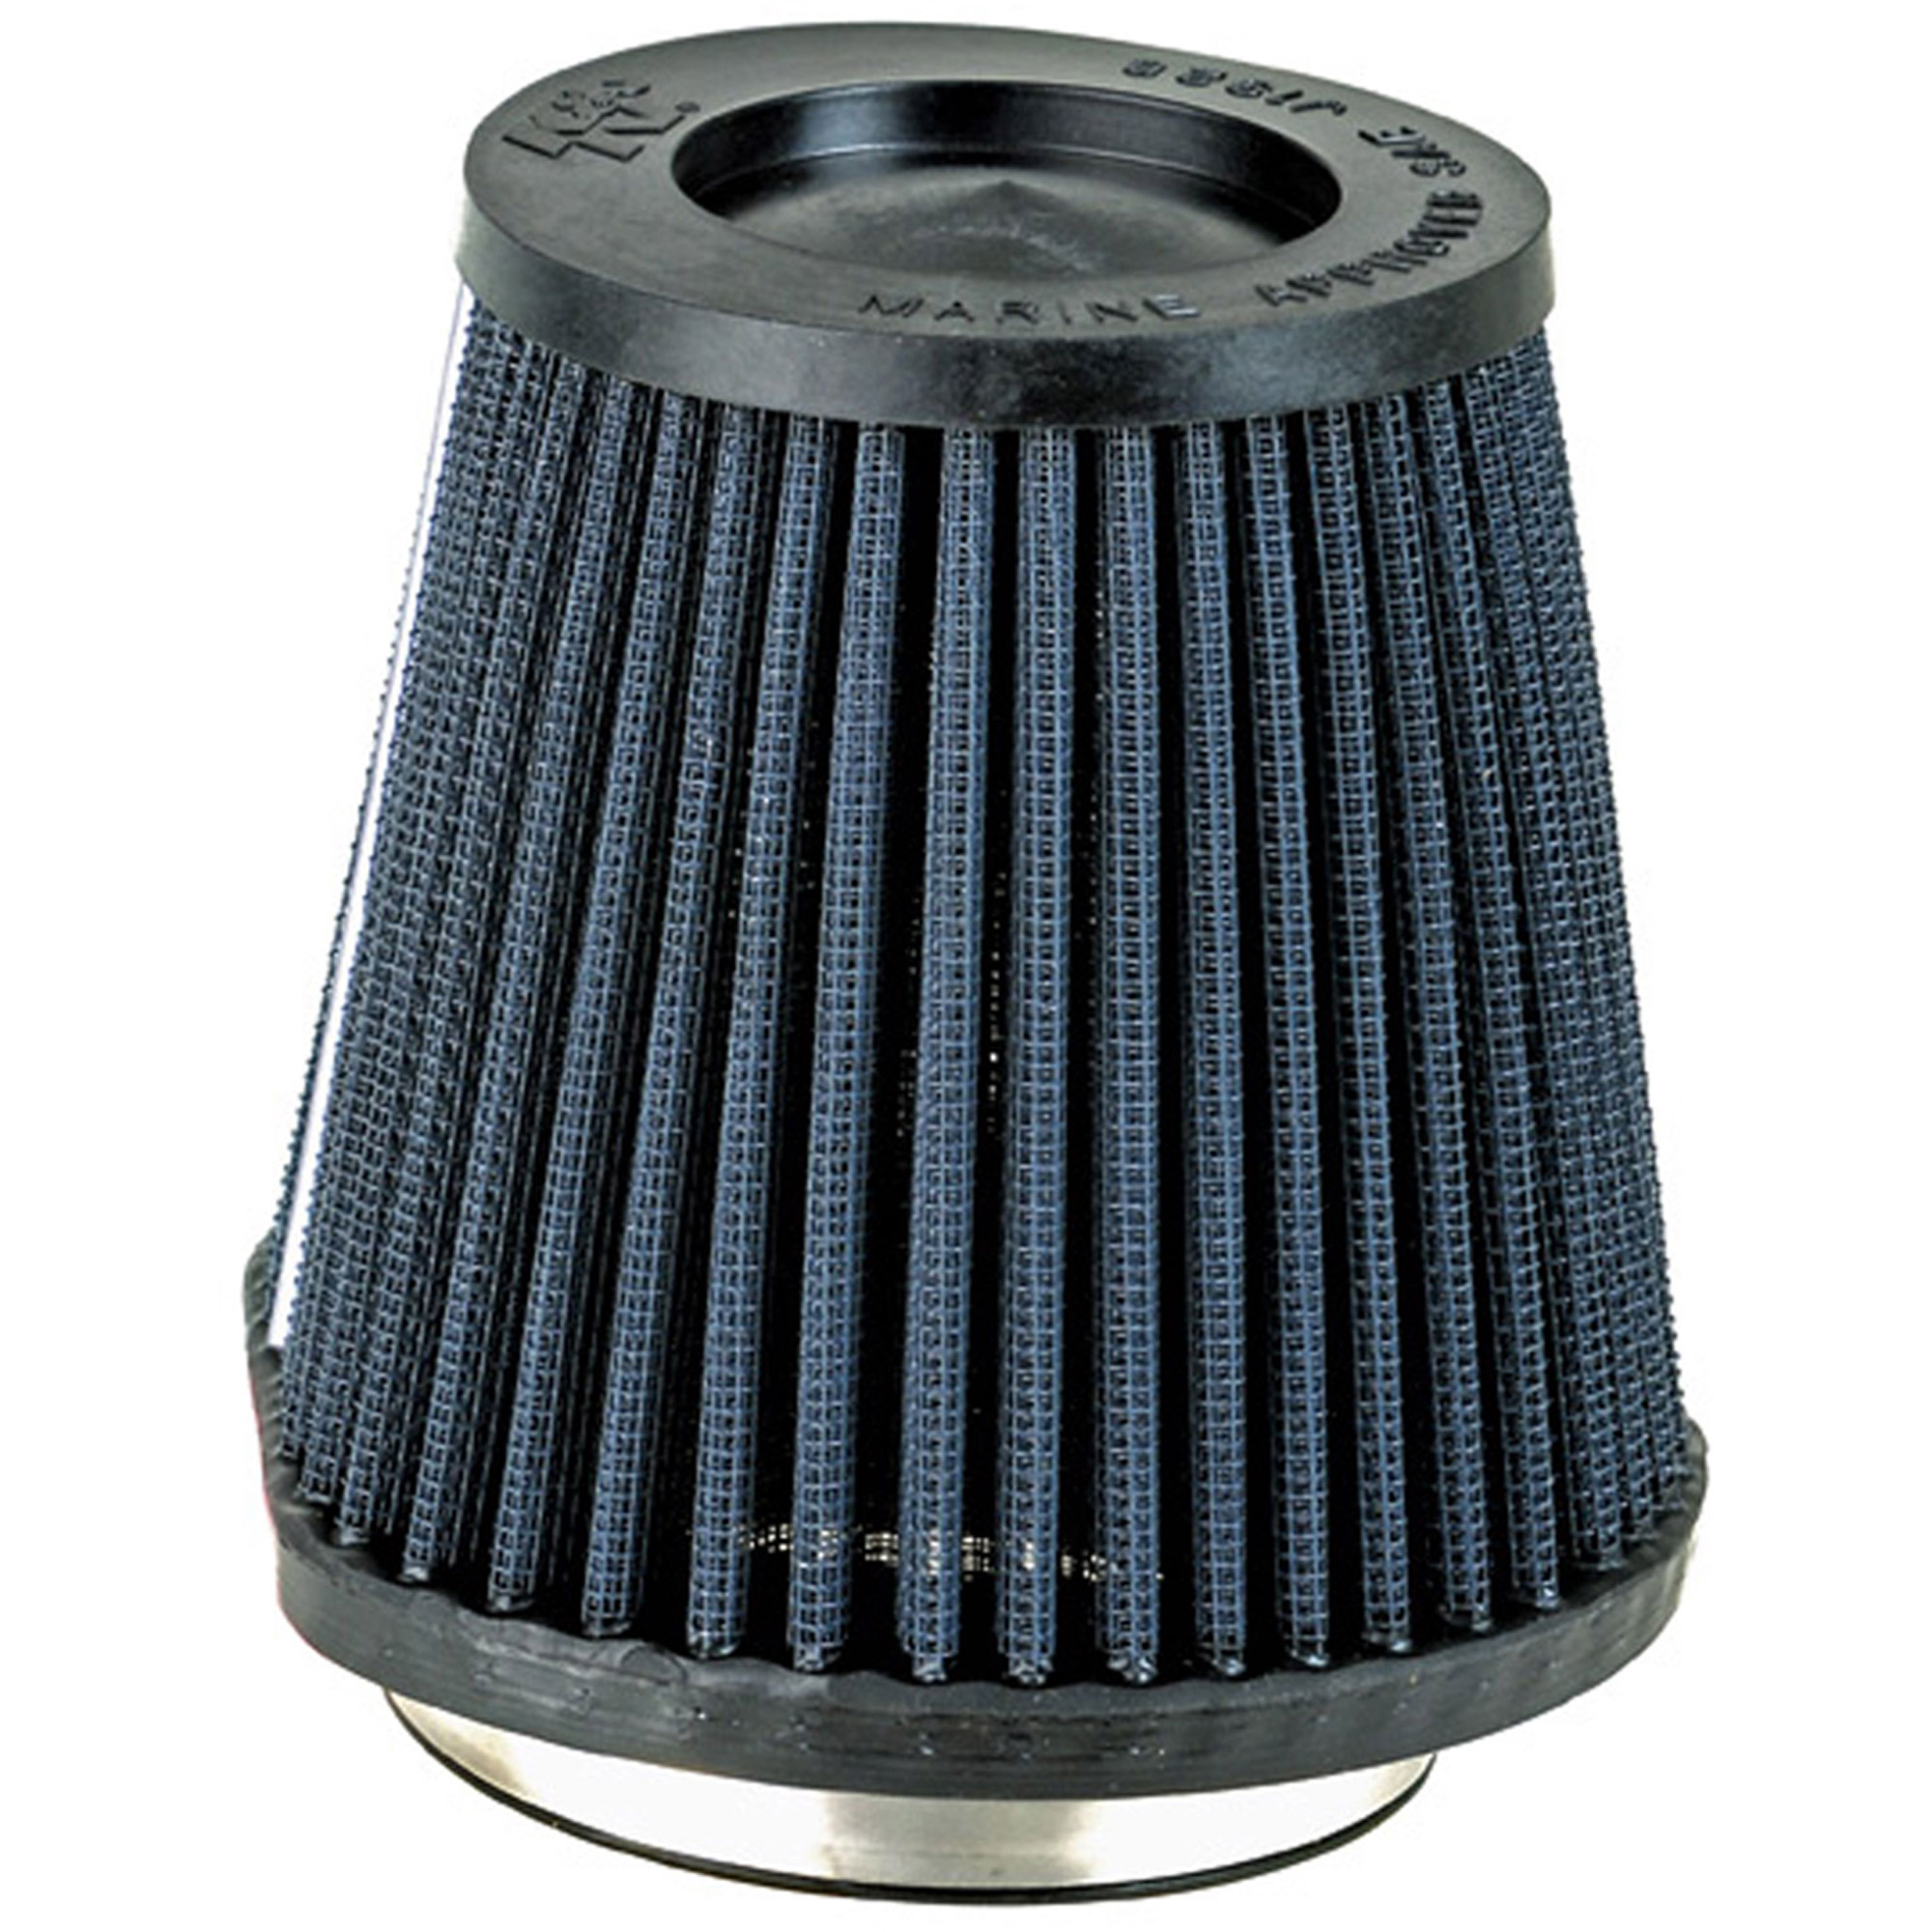 K&N Marine Flame Arrestor - Race Specific, Black # 59-2040RK